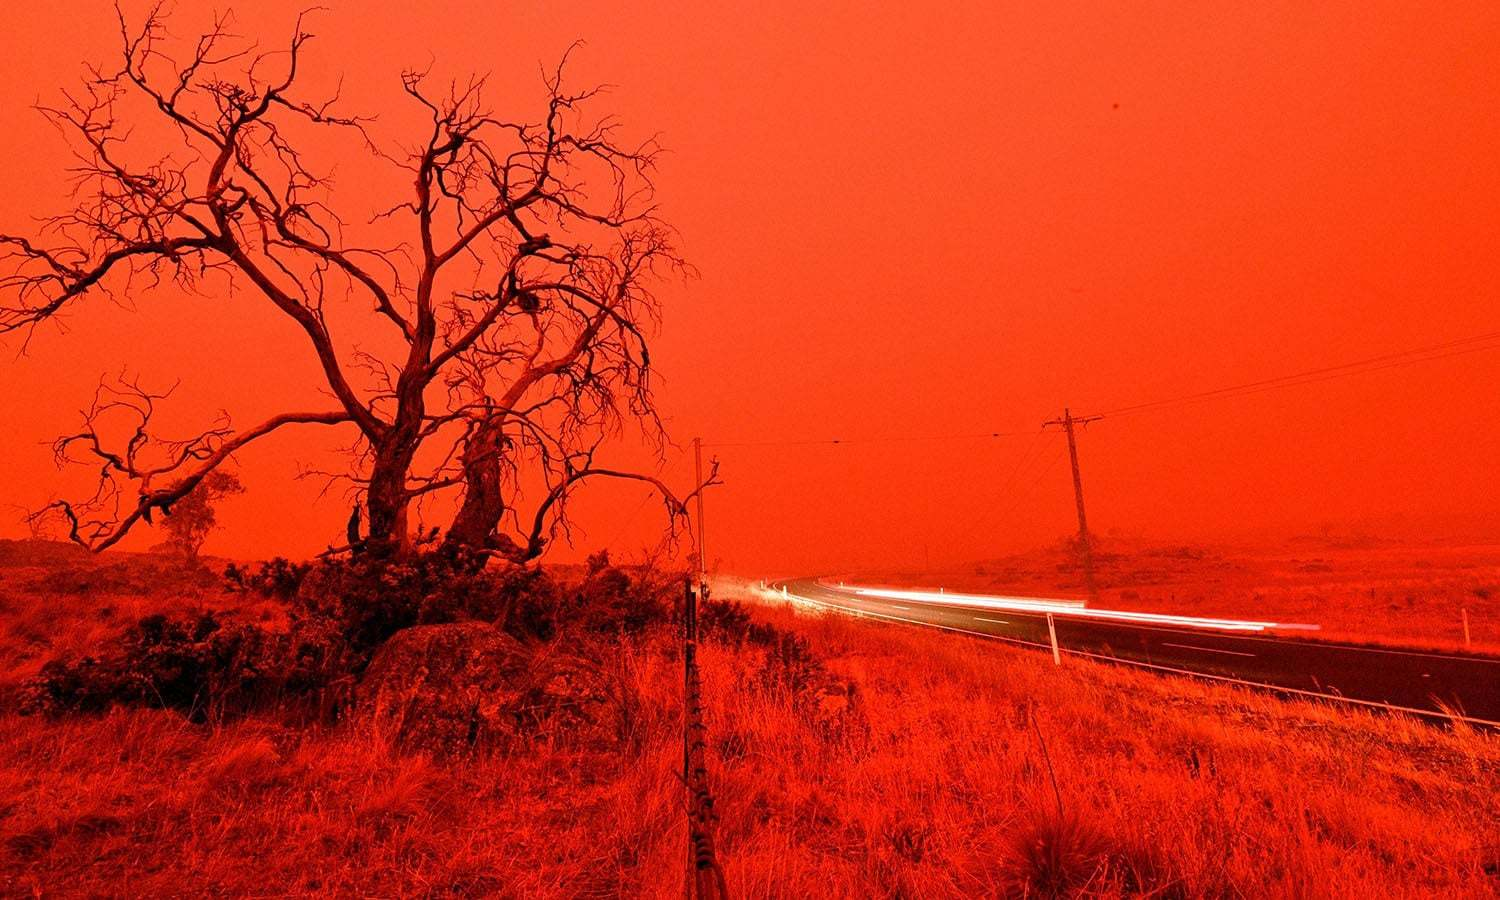 In pictures: Australia burns as wildfires enter sixth day